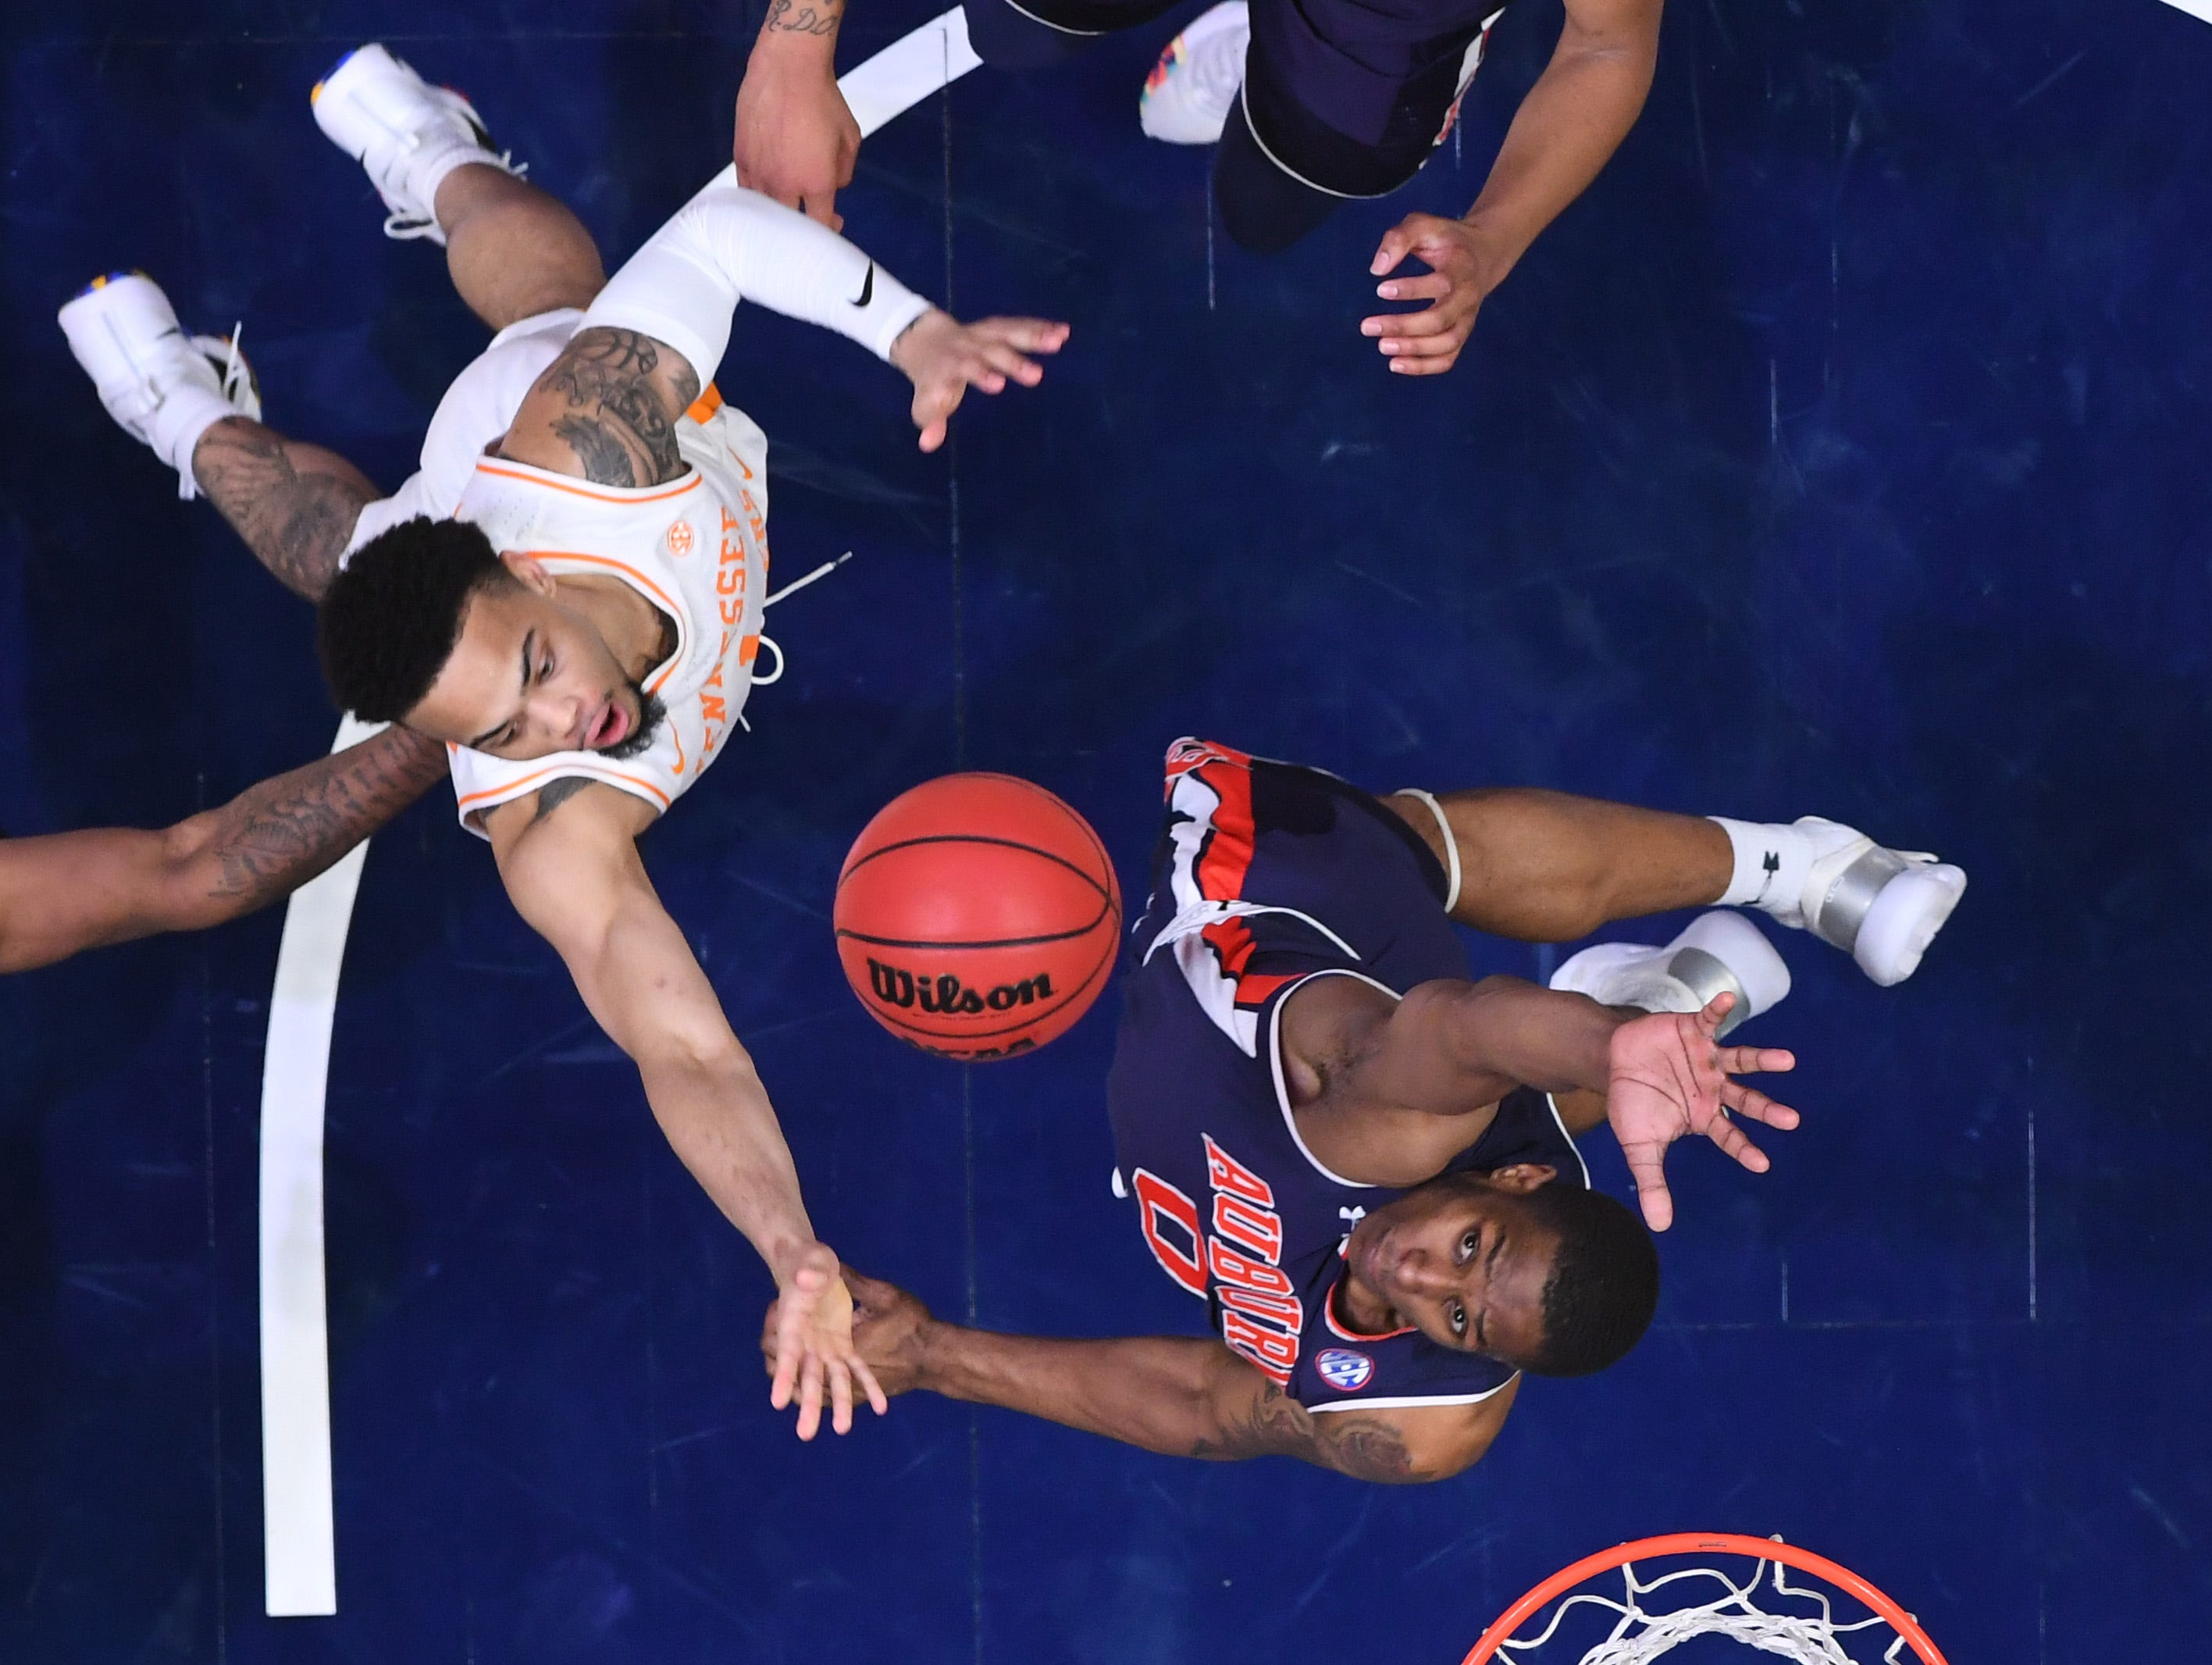 Mar 17, 2019; Nashville, TN, USA; Tennessee Volunteers guard Lamonte Turner (1) shoots over a block attempt from Auburn Tigers forward Horace Spencer (0) in the SEC conference tournament championship game at Bridgestone Arena. Mandatory Credit: Christopher Hanewinckel-USA TODAY Sports